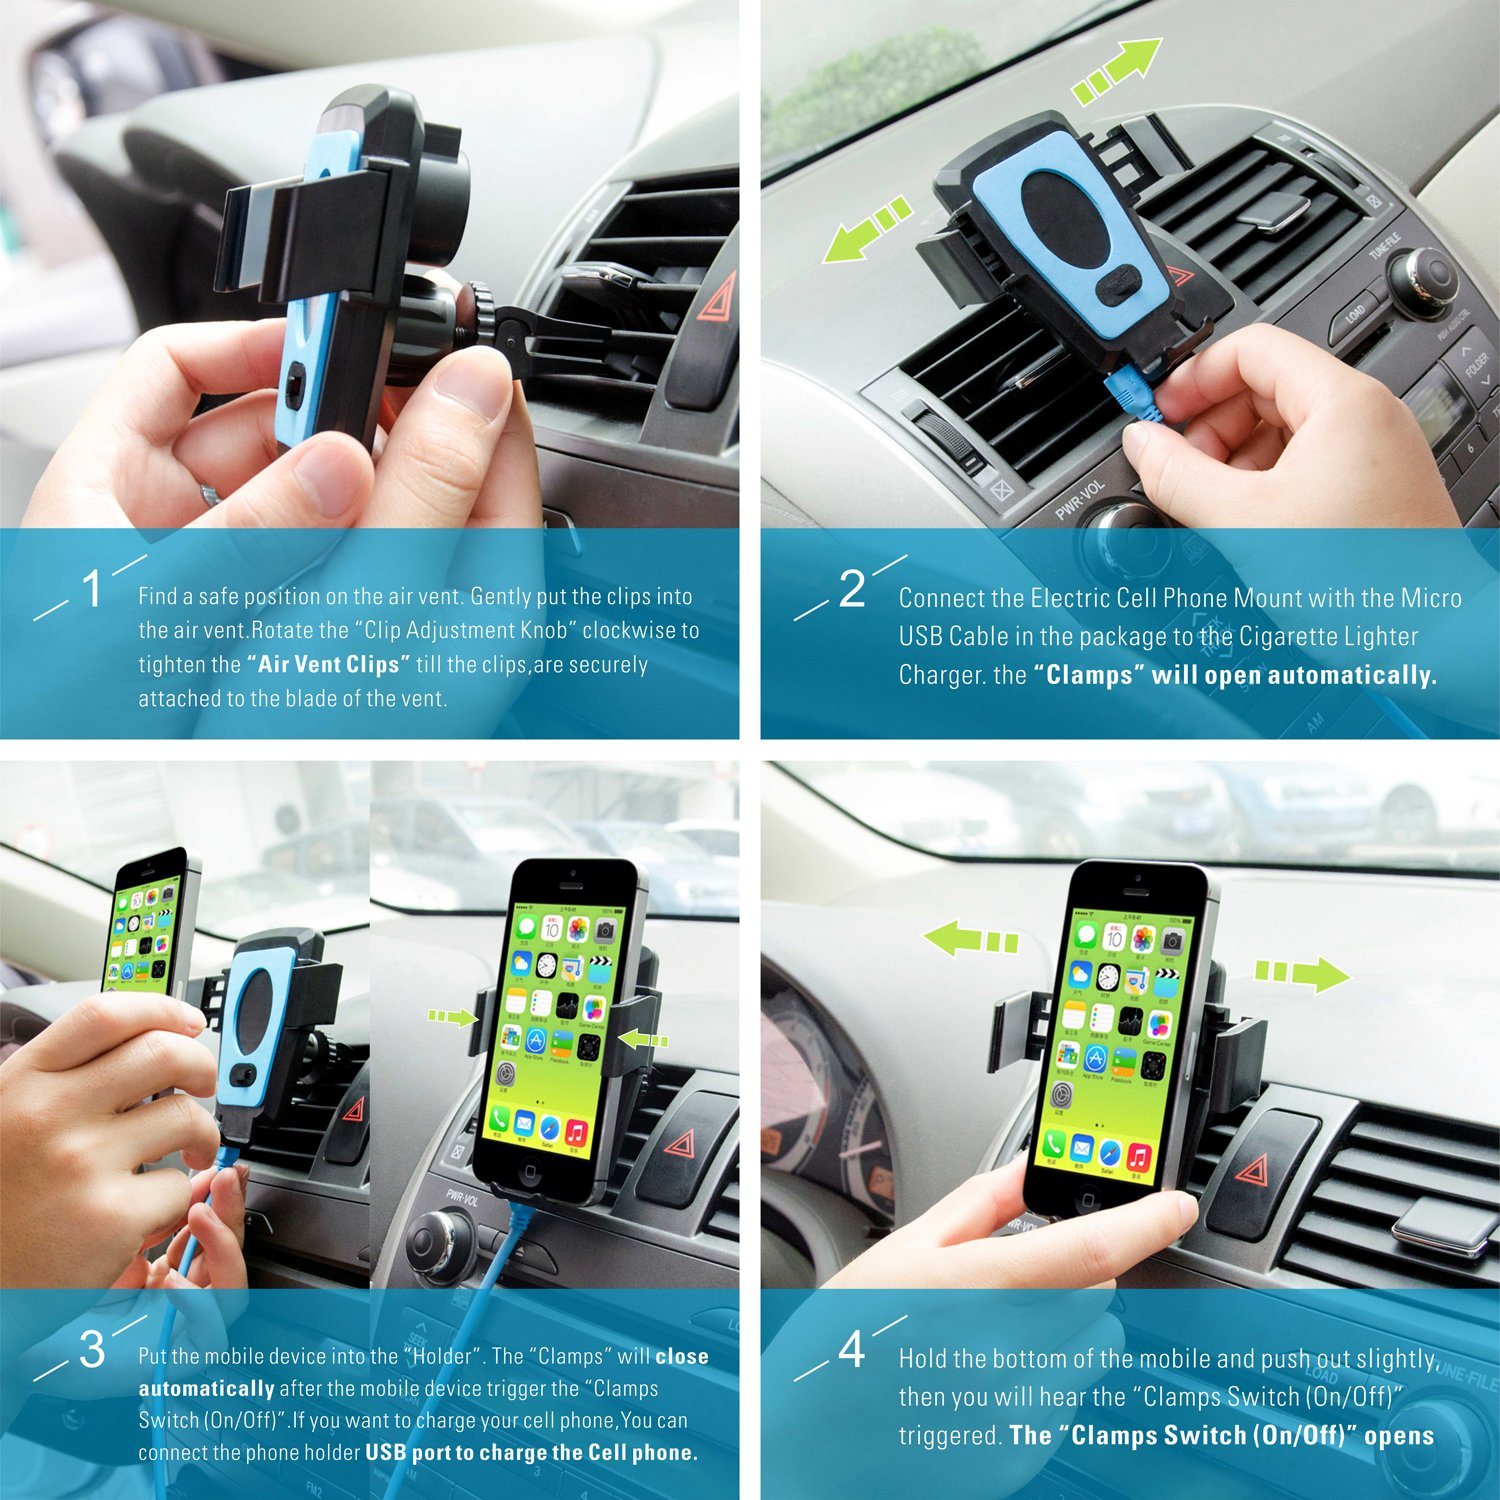 360/°Rotation Top-Longer Industry Limited TL C20 Top-Longer Car Phone Mount Air Vent Mobile Phone Cradle Car Holder with USB ChARGING PORT